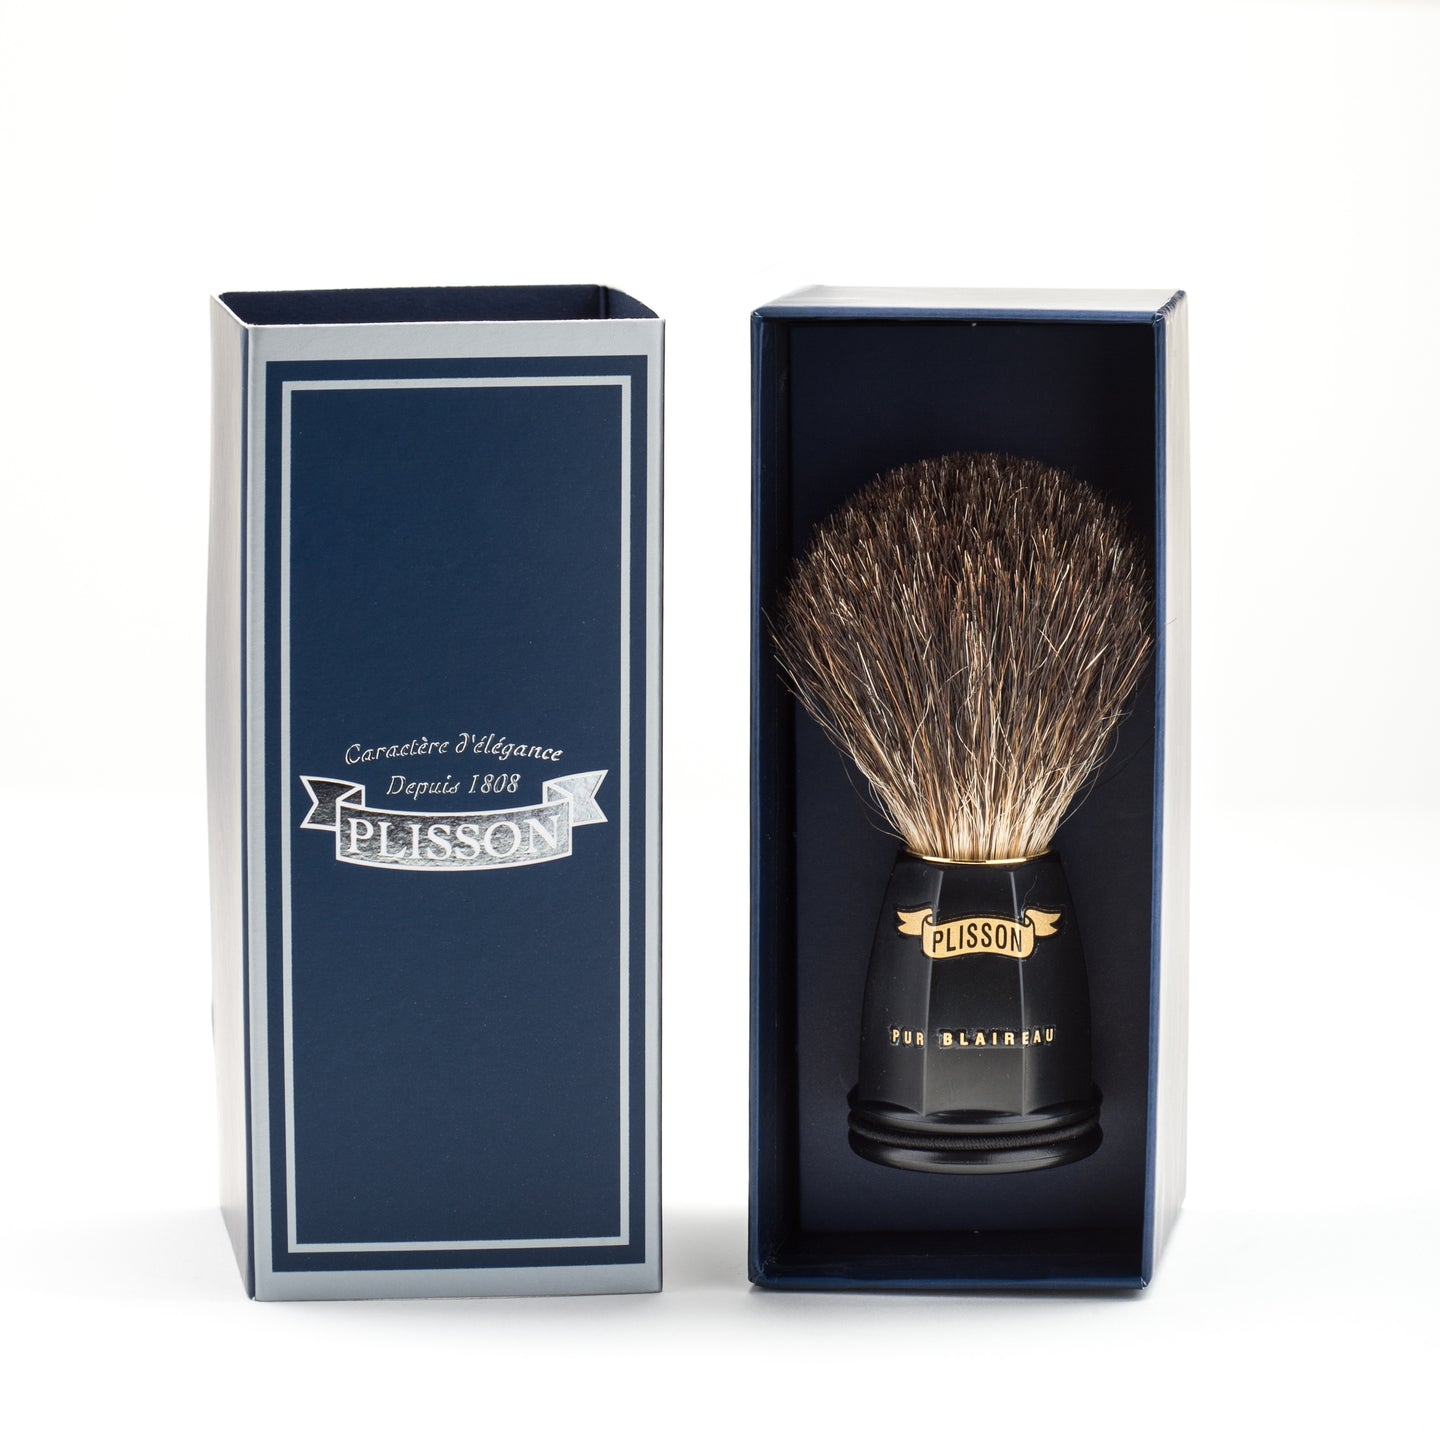 shaving brush - blaireau - Plisson - PETITS TRESORS DE FRANCE